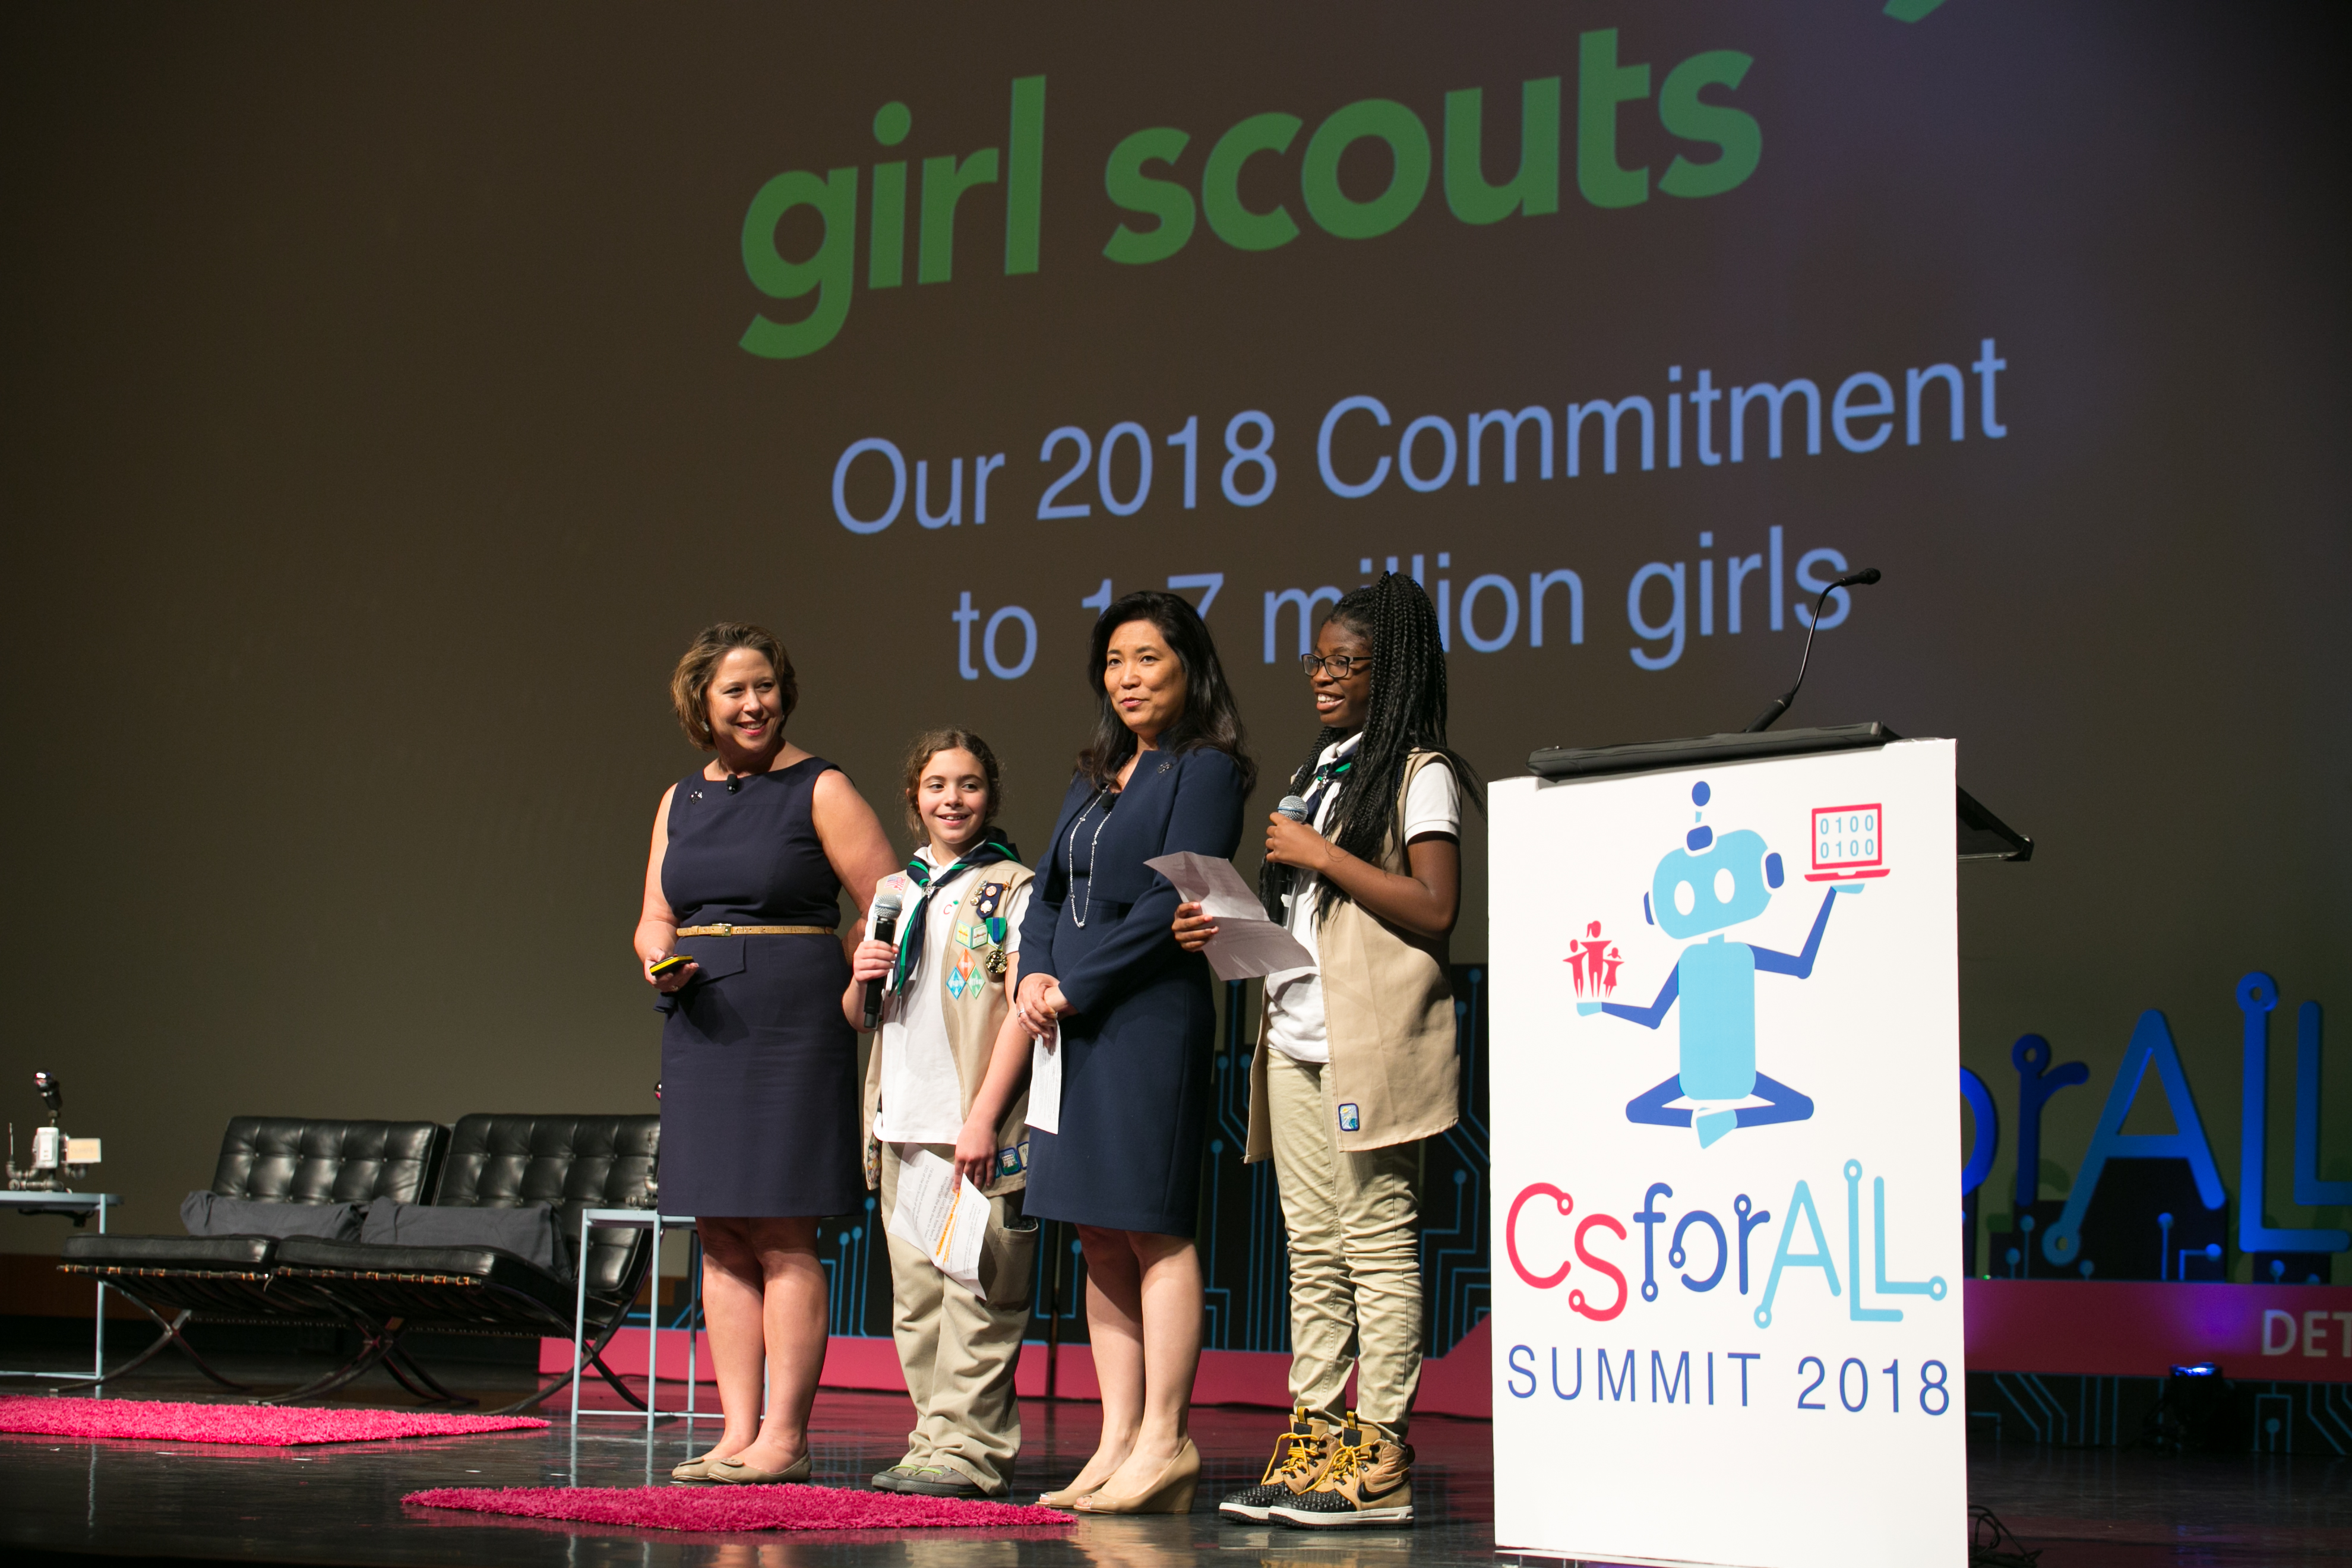 Girl Scouts Commitment